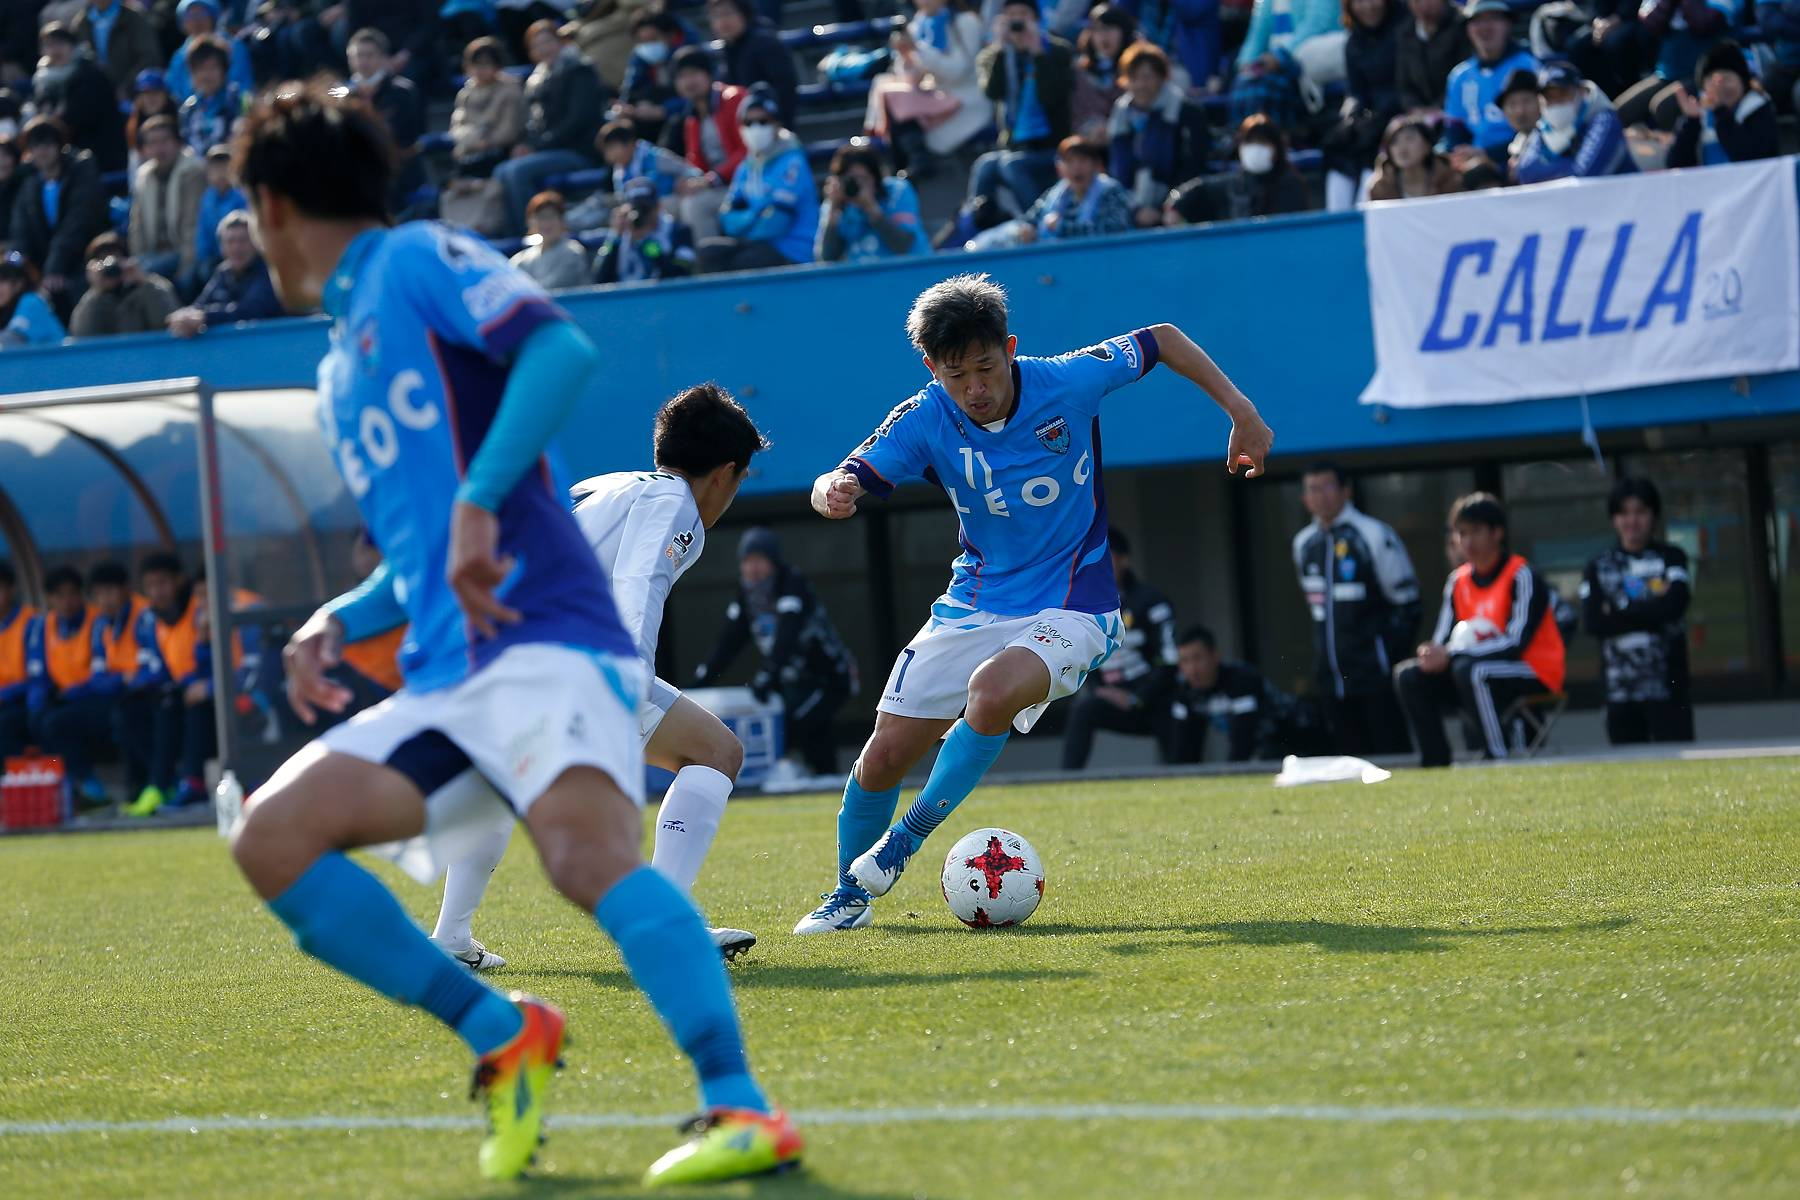 Kazuyoshi Miura extends record as oldest goalscorer in J.League aged 50!